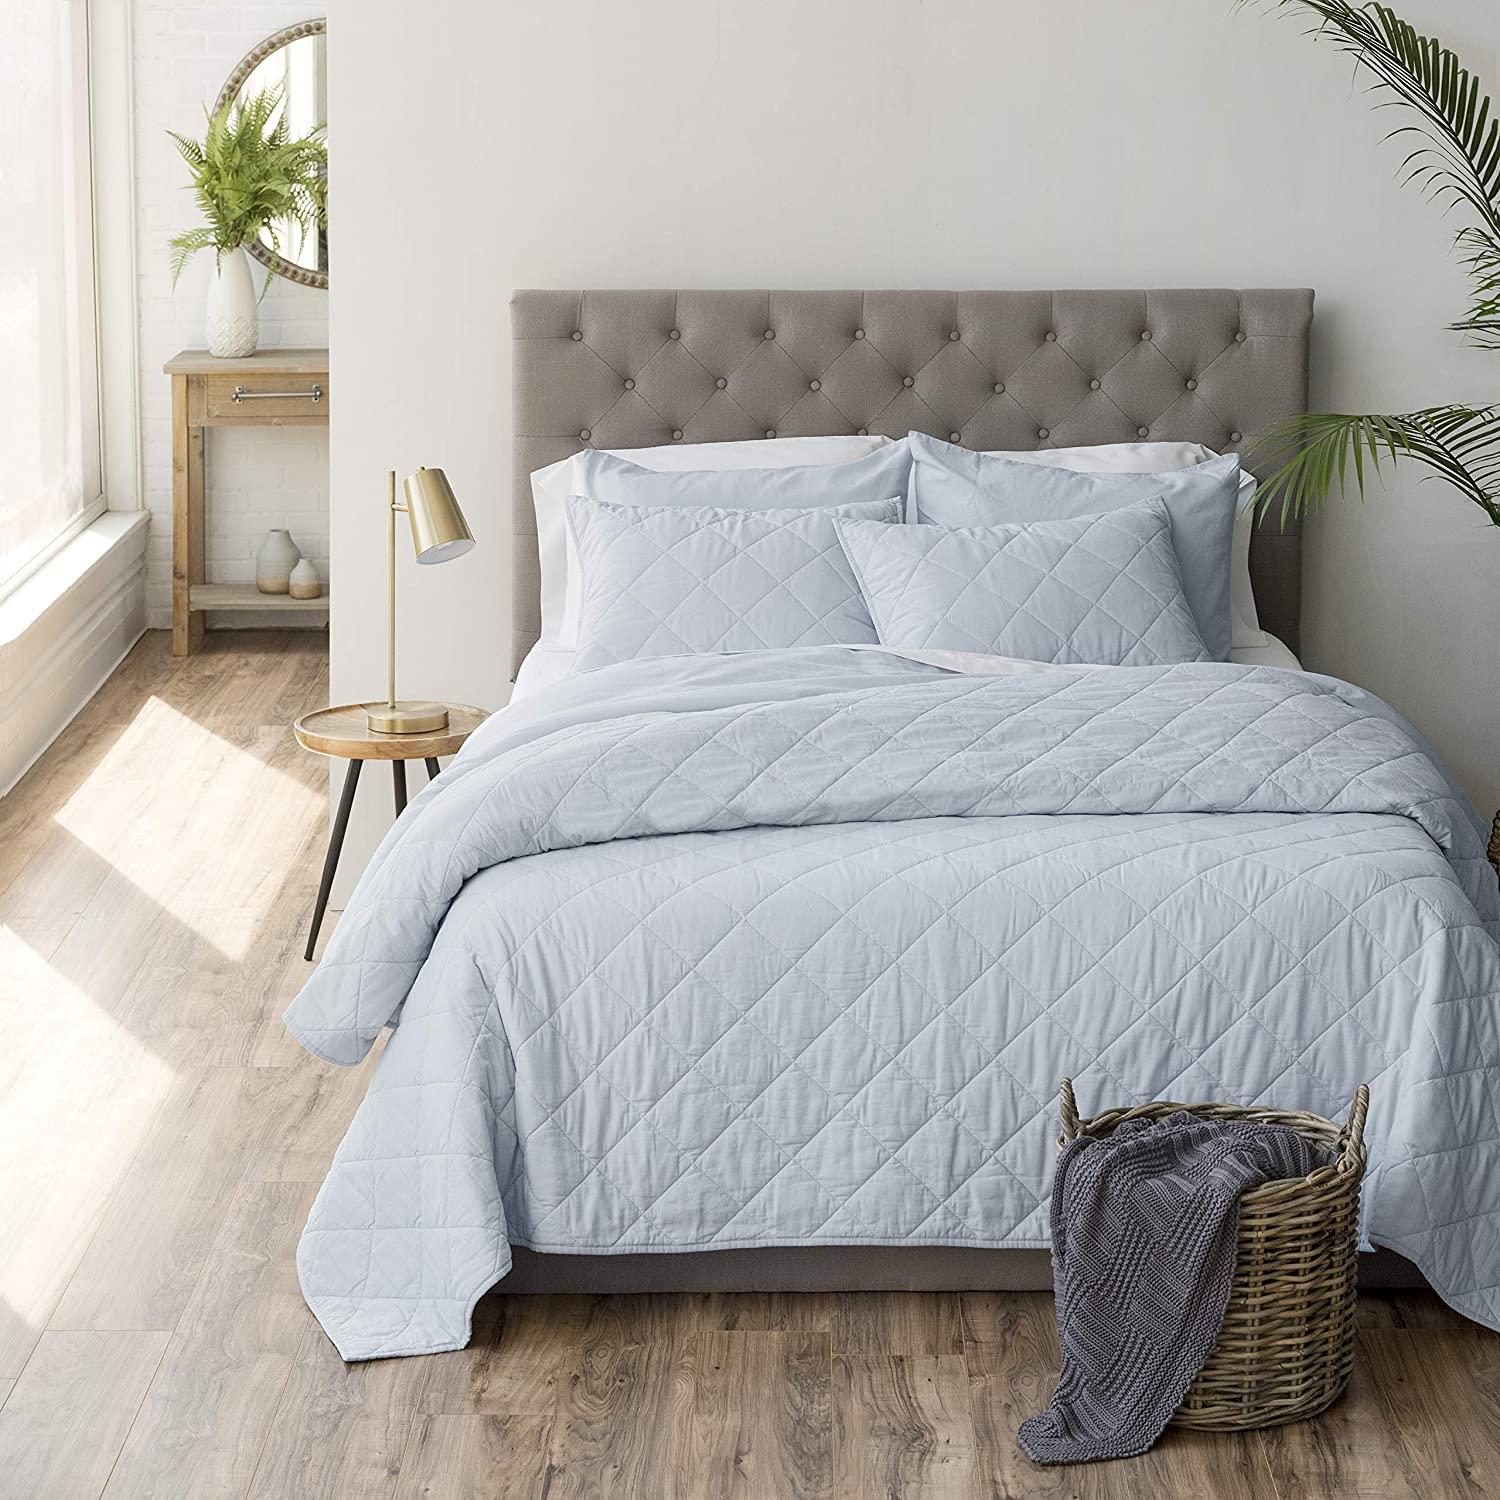 Welhome Recommended Luxurious Hunter 3-Piece Cotton Percale Linen Quilt - Ki Raleigh Mall